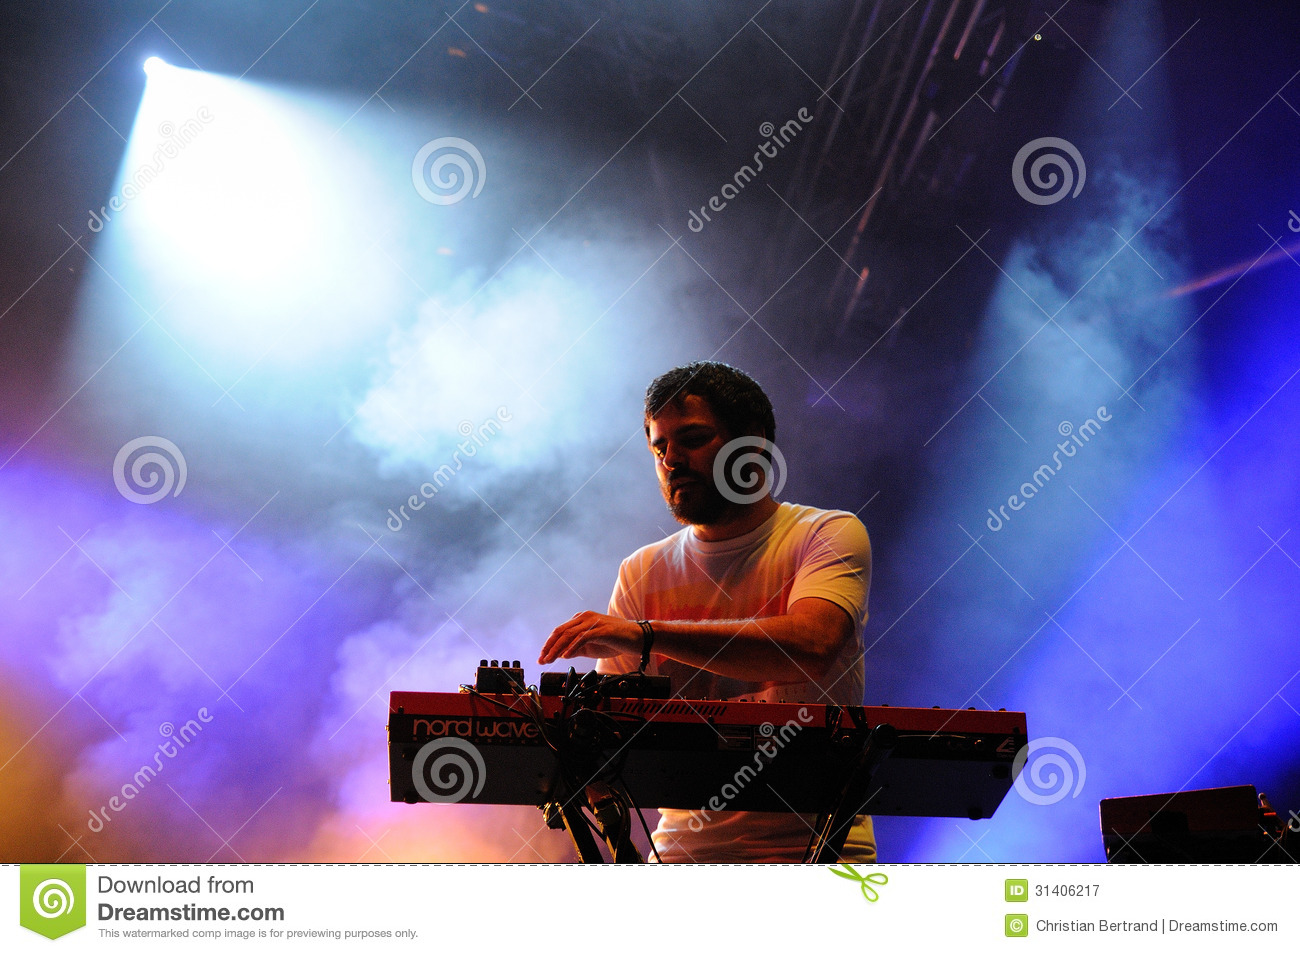 unai lazcano keyboardist of delorean band editorial